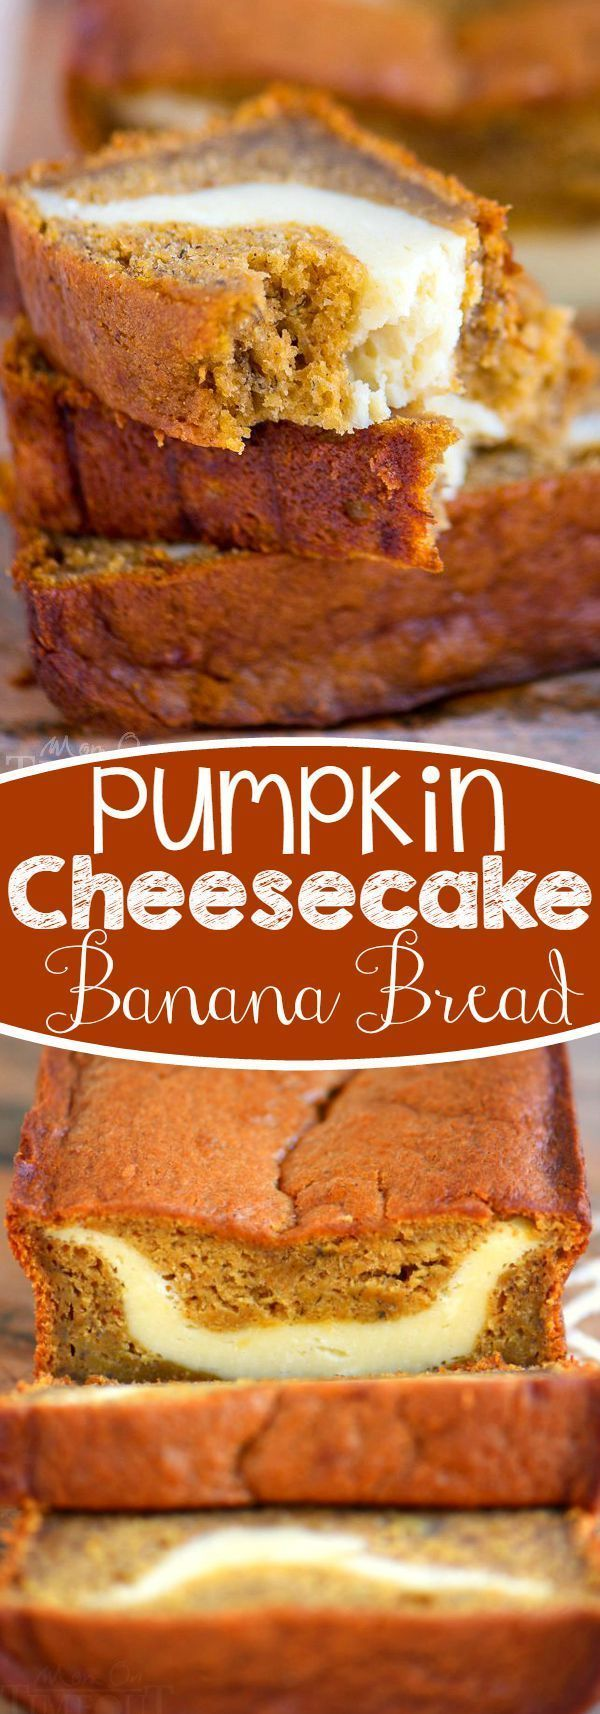 This Pumpkin Cheesecake Banana Bread